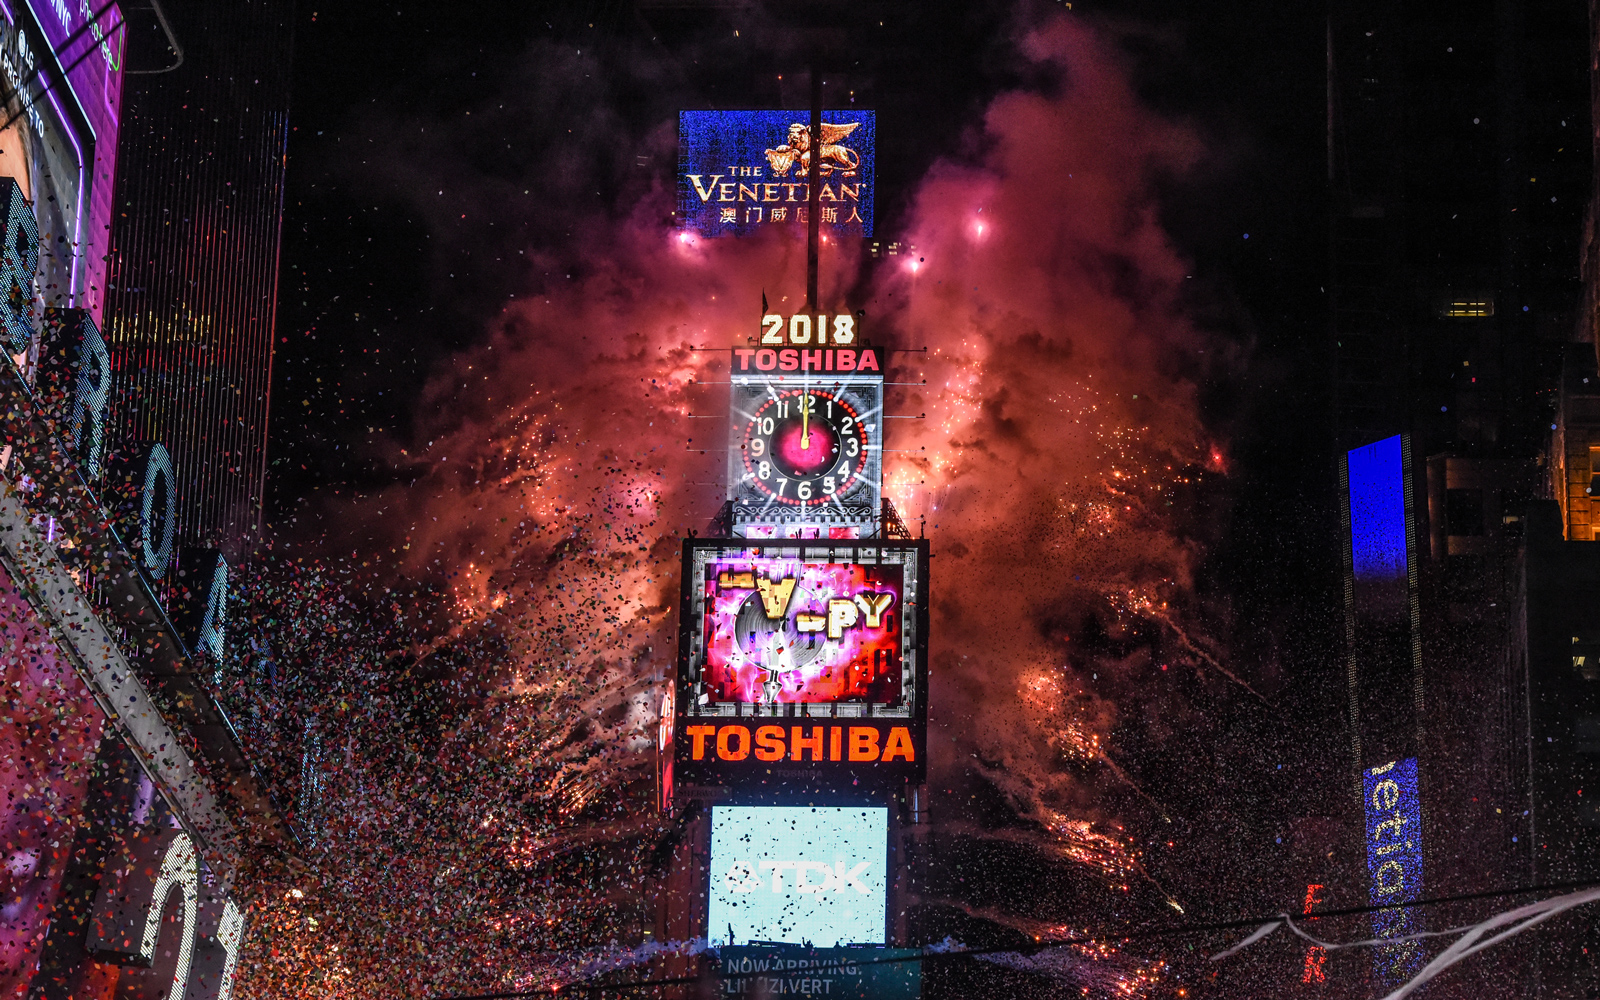 This Over-the-top New Year's Eve Party Is on a Rooftop Just 150 Feet From the Ball Drop in Times Square — and Tickets Are $125,000